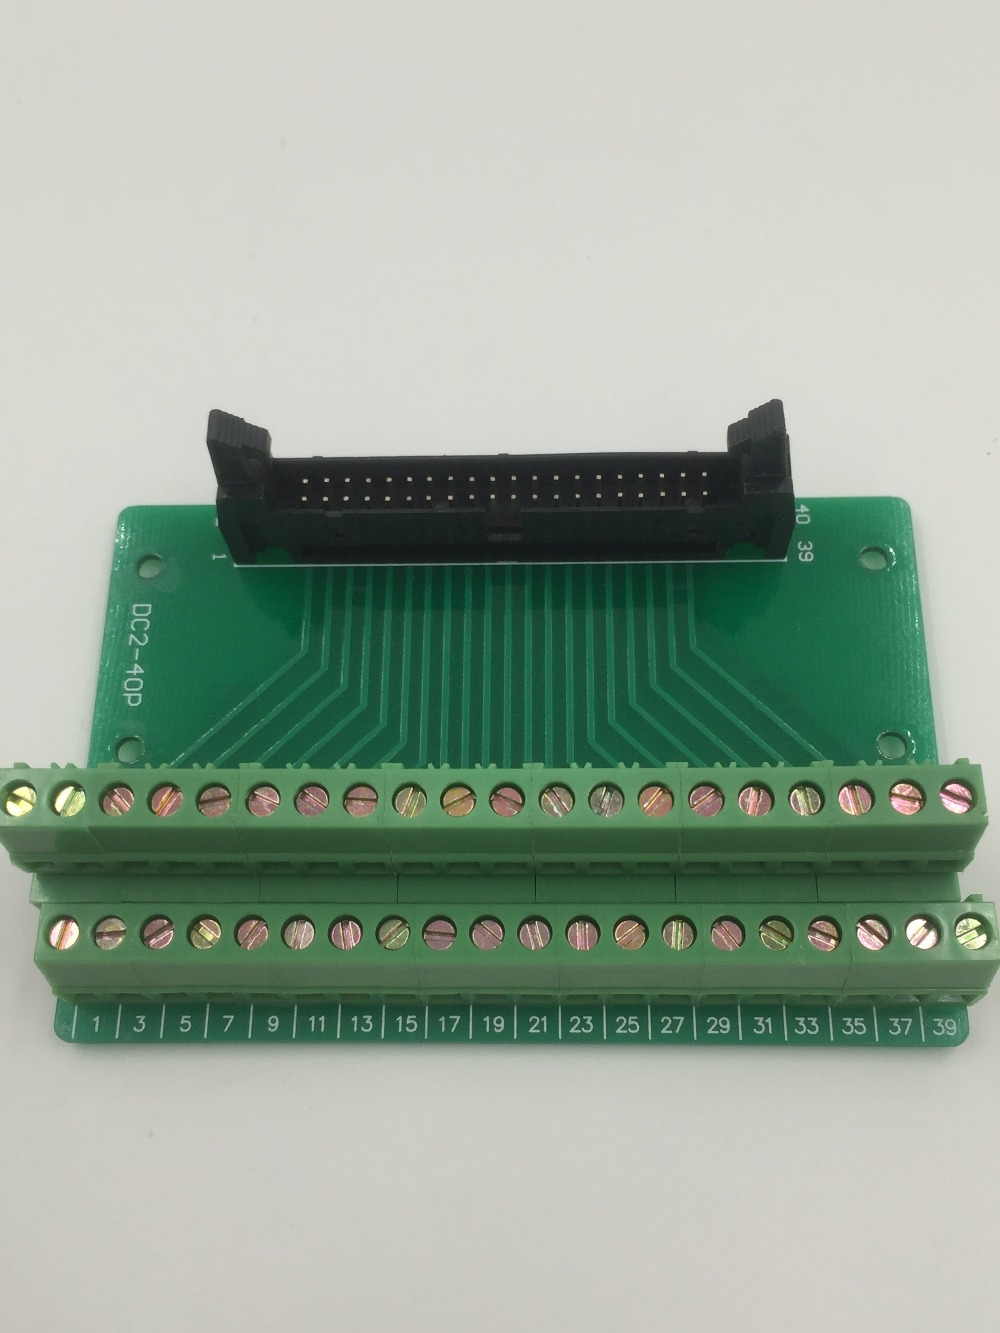 Hot Factory Direct Wholesale IDC40 male plug 40pin port header Terminal Breakout PCB Board block 2 row screw hot factory direct wholesale idc40 male plug 40pin port header terminal breakout pcb board block 2 row screw